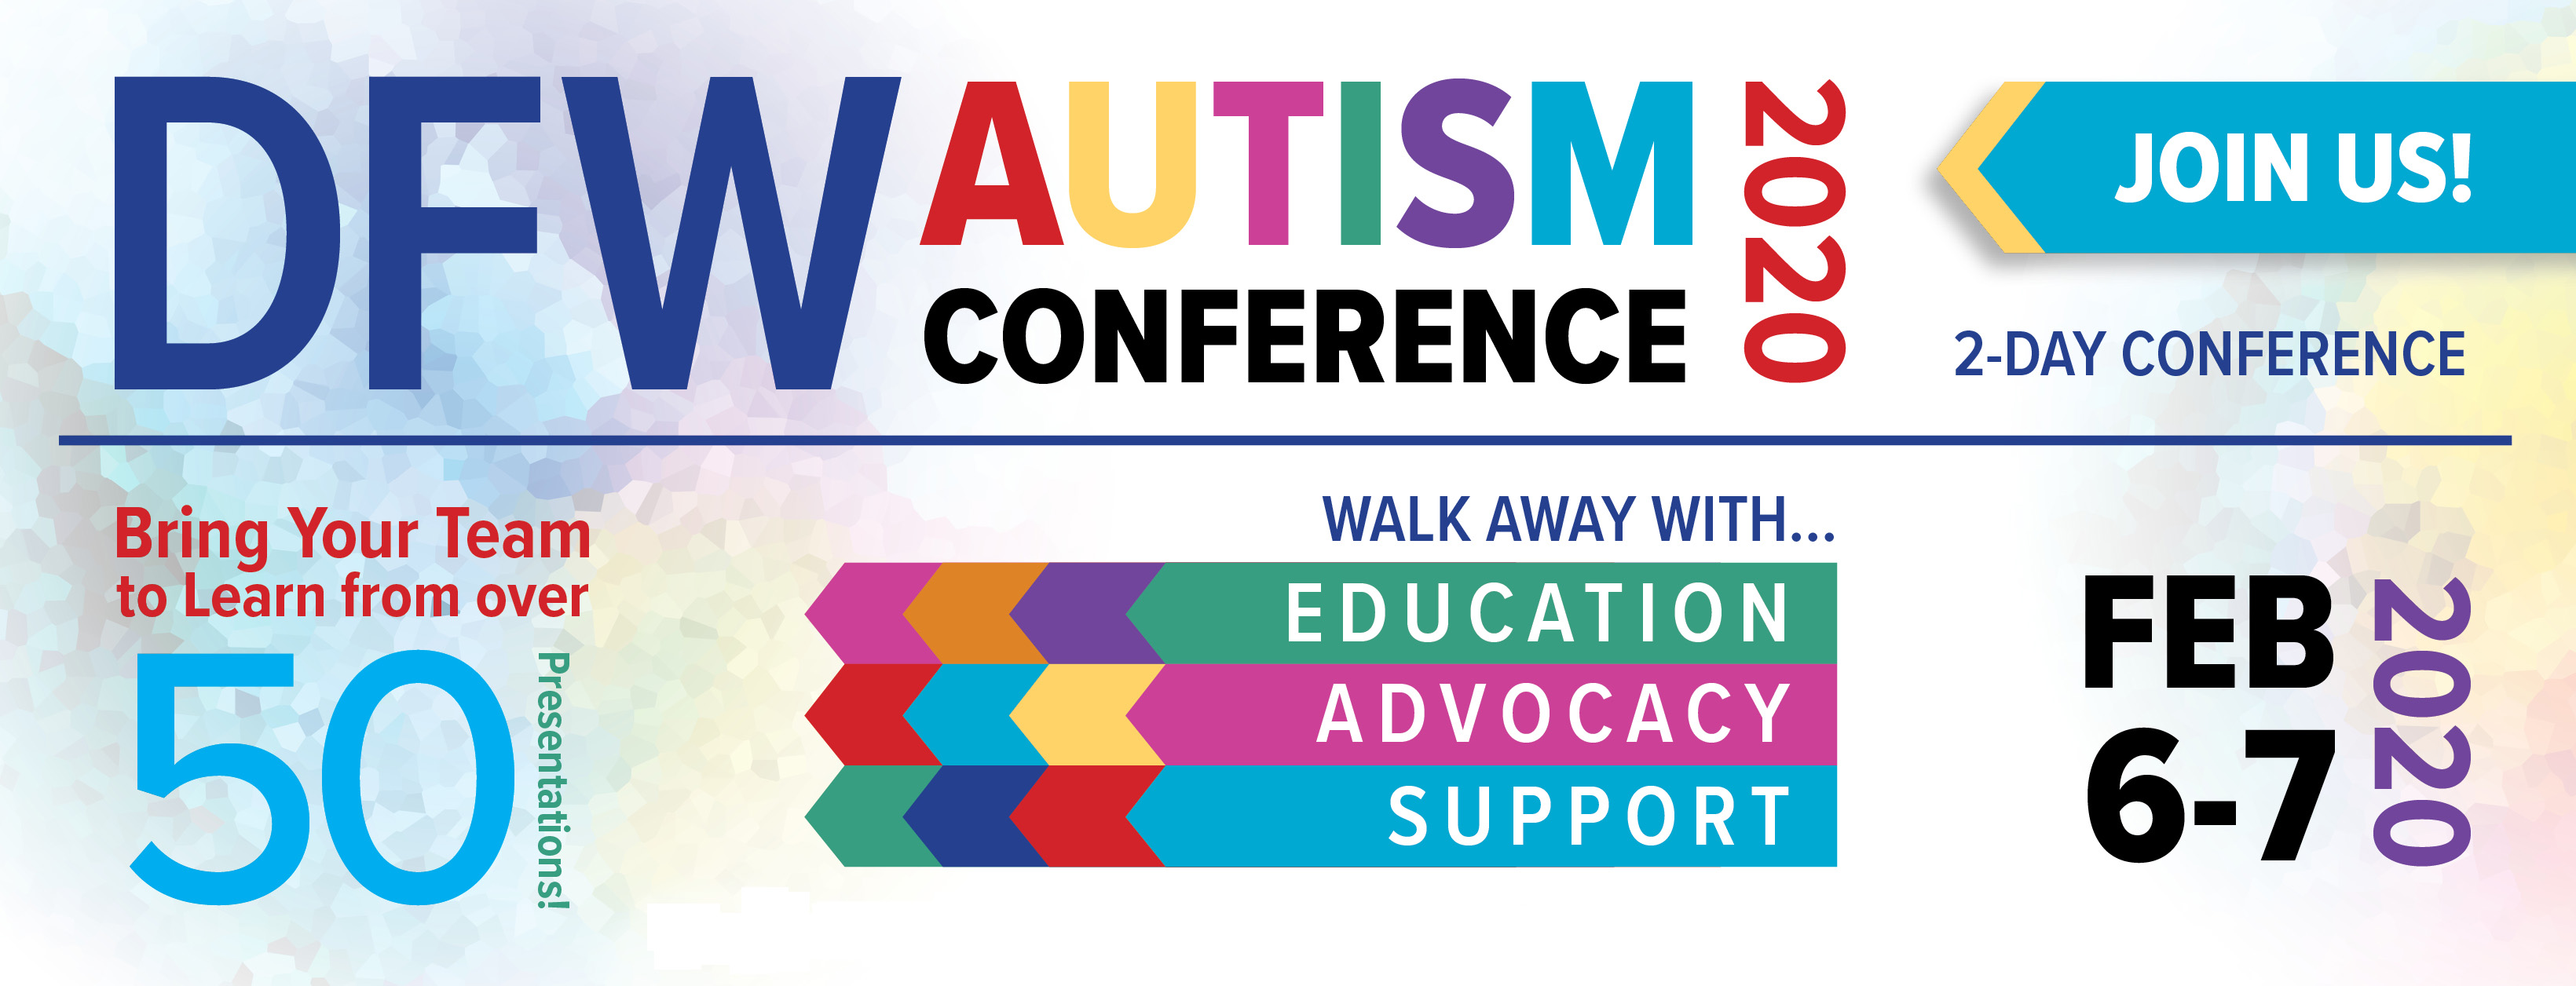 FEAT-DFW-Autism-Conference-Banner-February-2020-NoLink